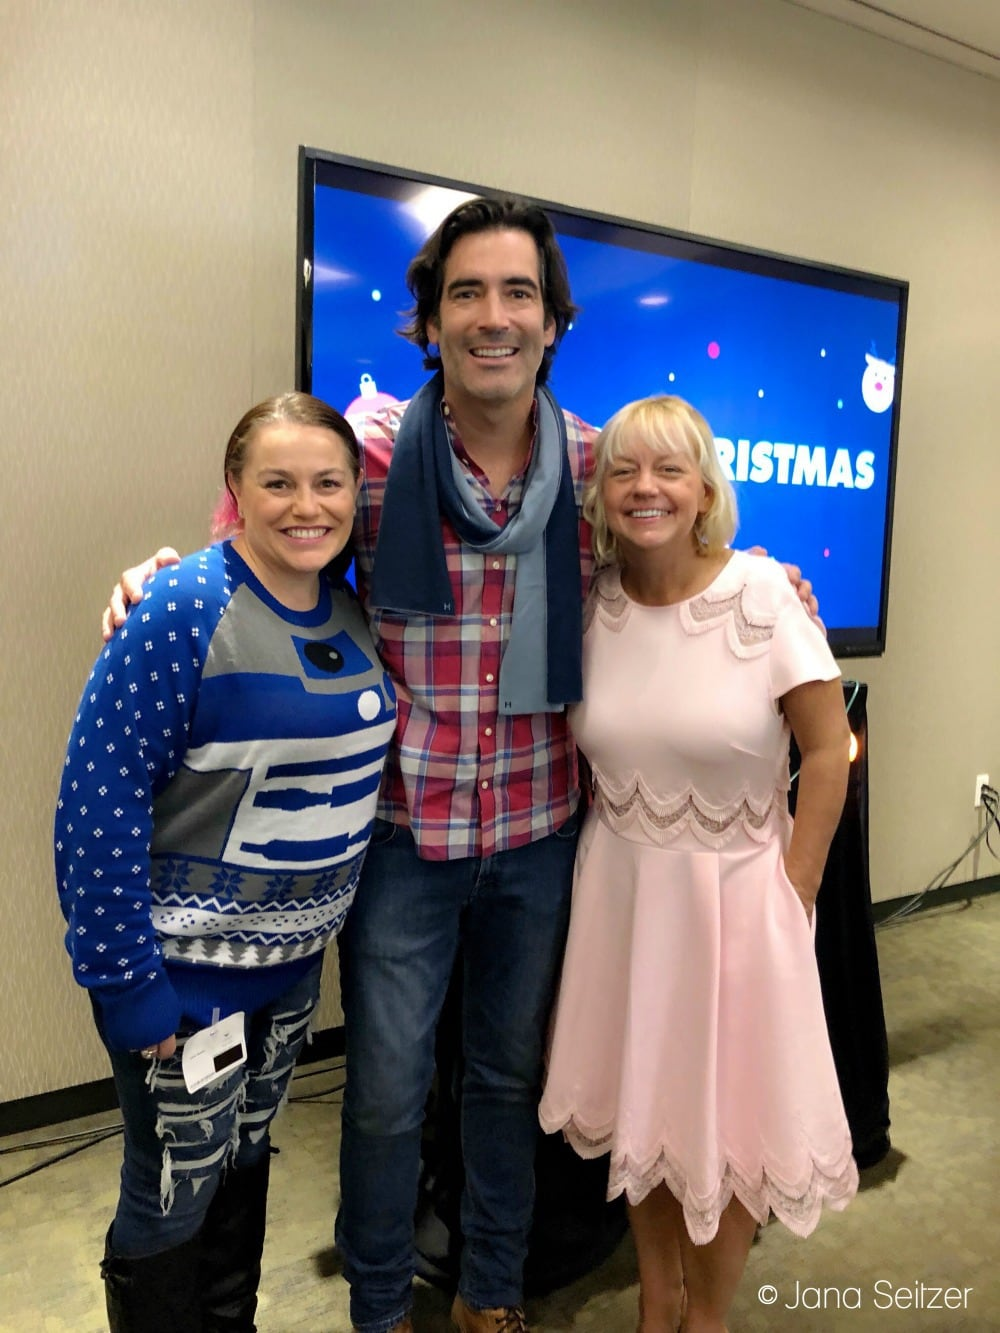 Spreading Holiday Cheer with Carter Oosterhouse and Sherry Yard - jana seitzer